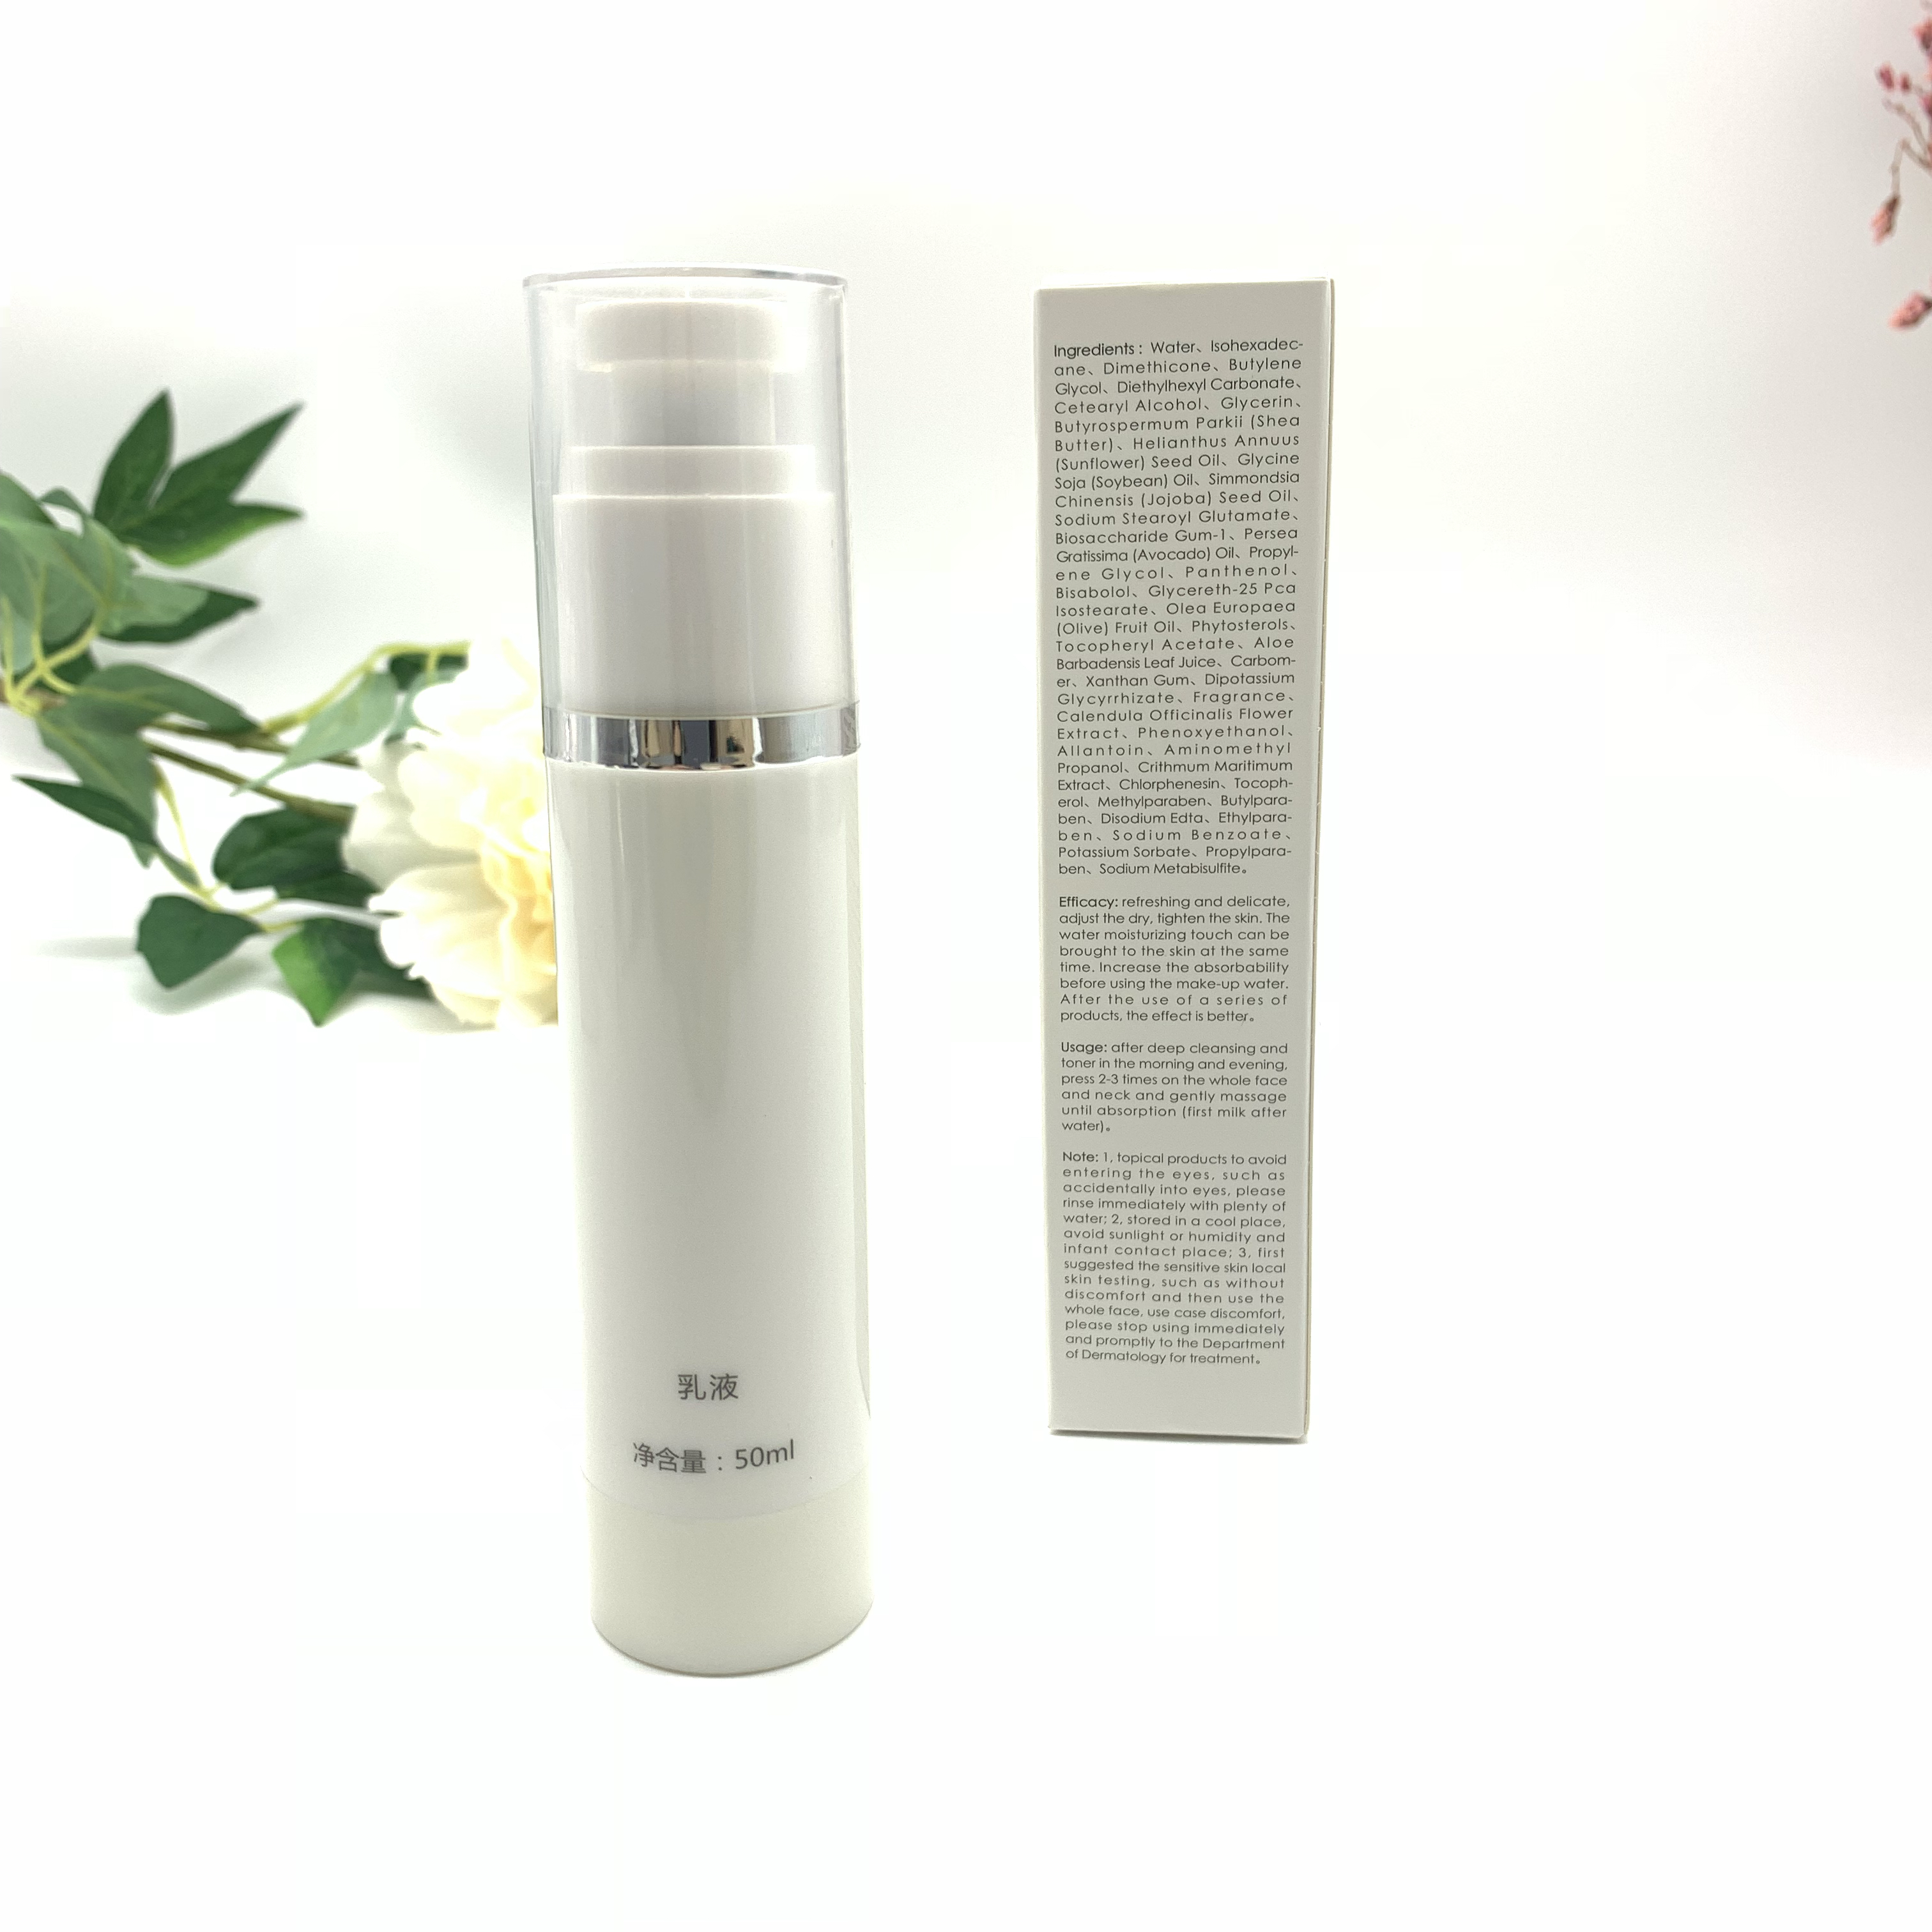 Skin Care Makeup Private Label Moisturizing And Tightening Face Cream Lotion